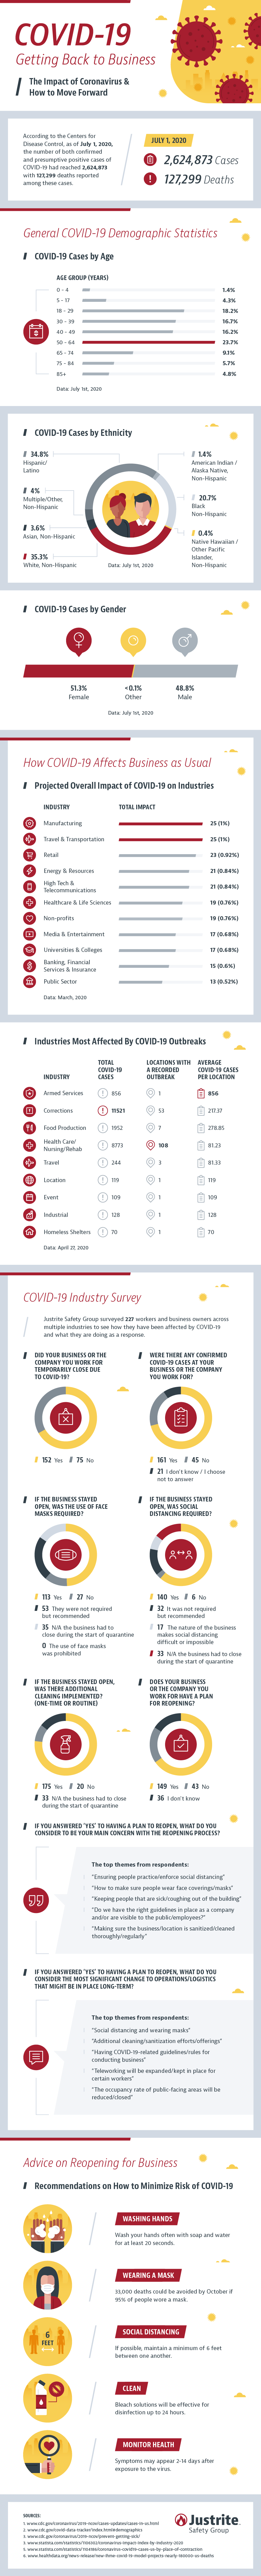 COVID-19 – Getting Back to Business #infographic